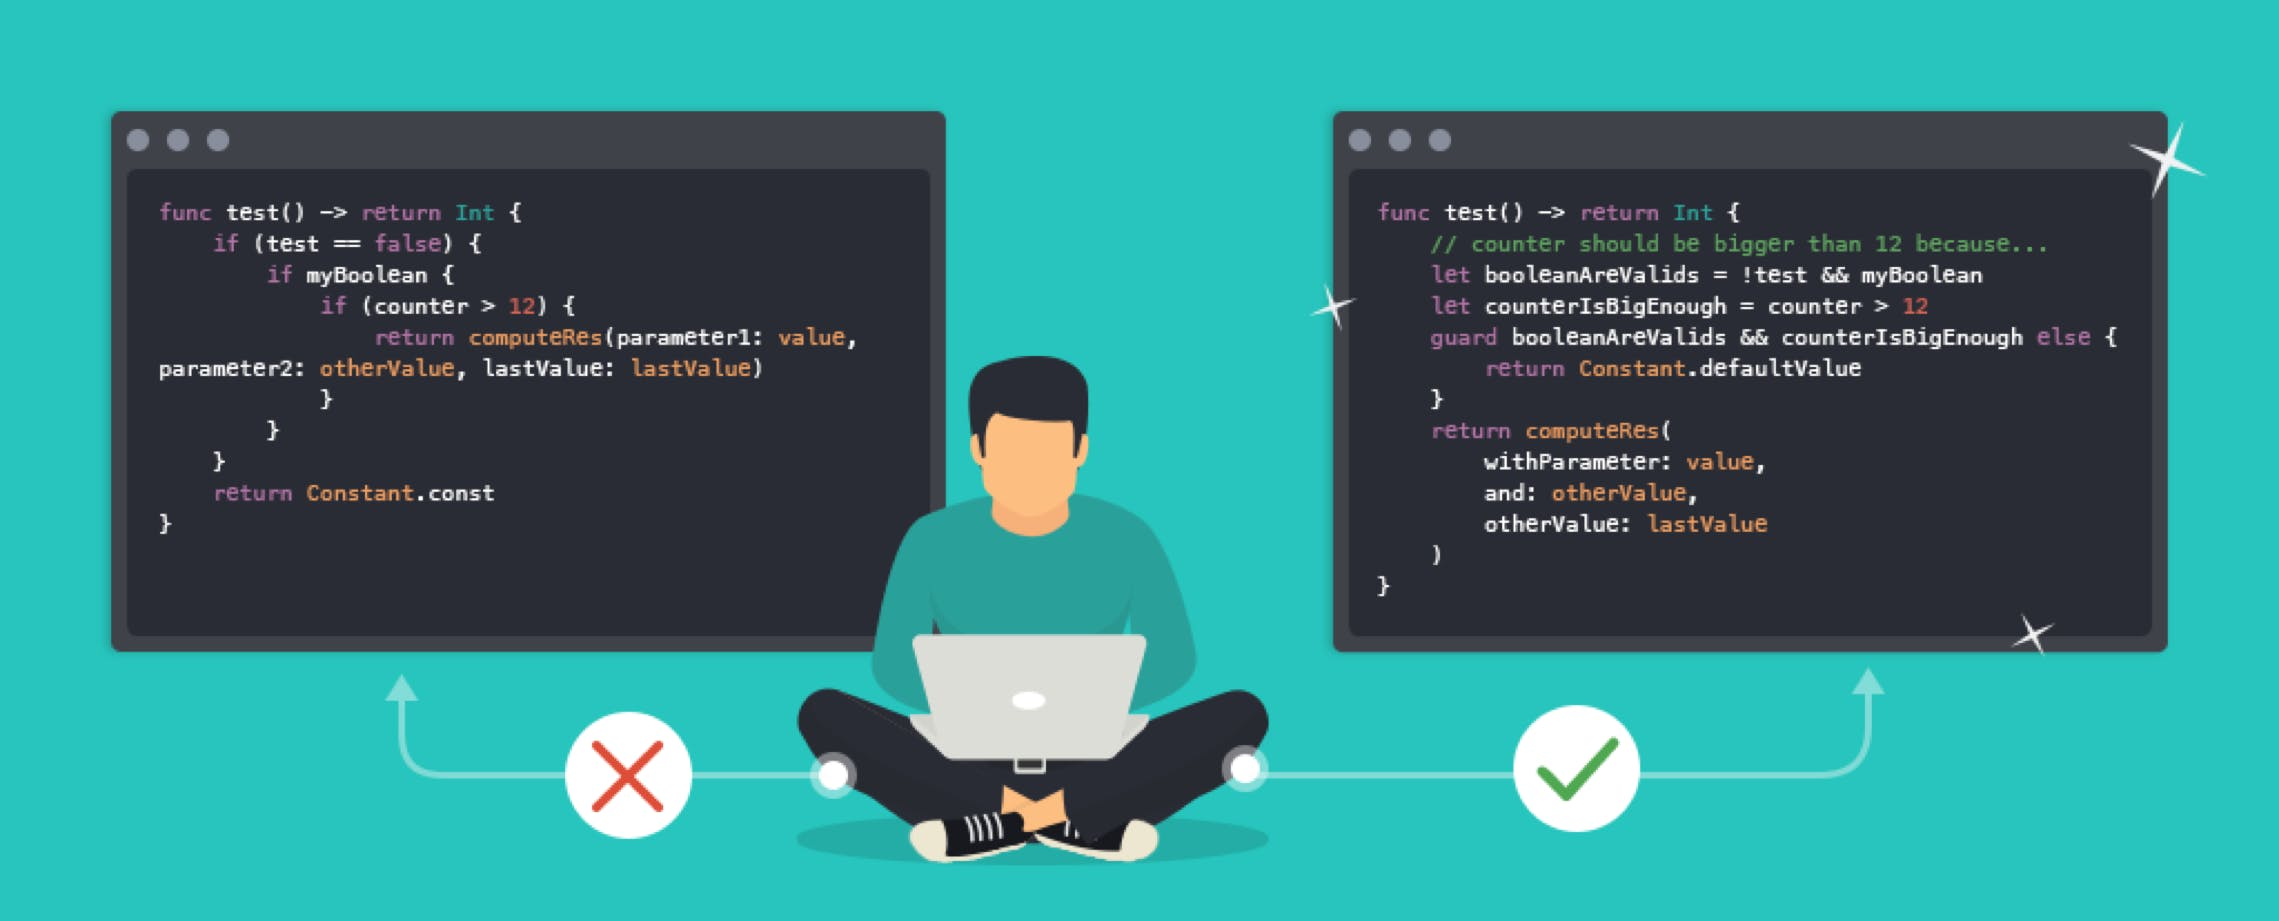 How to make a code review at Applidium | FABERNOVEL